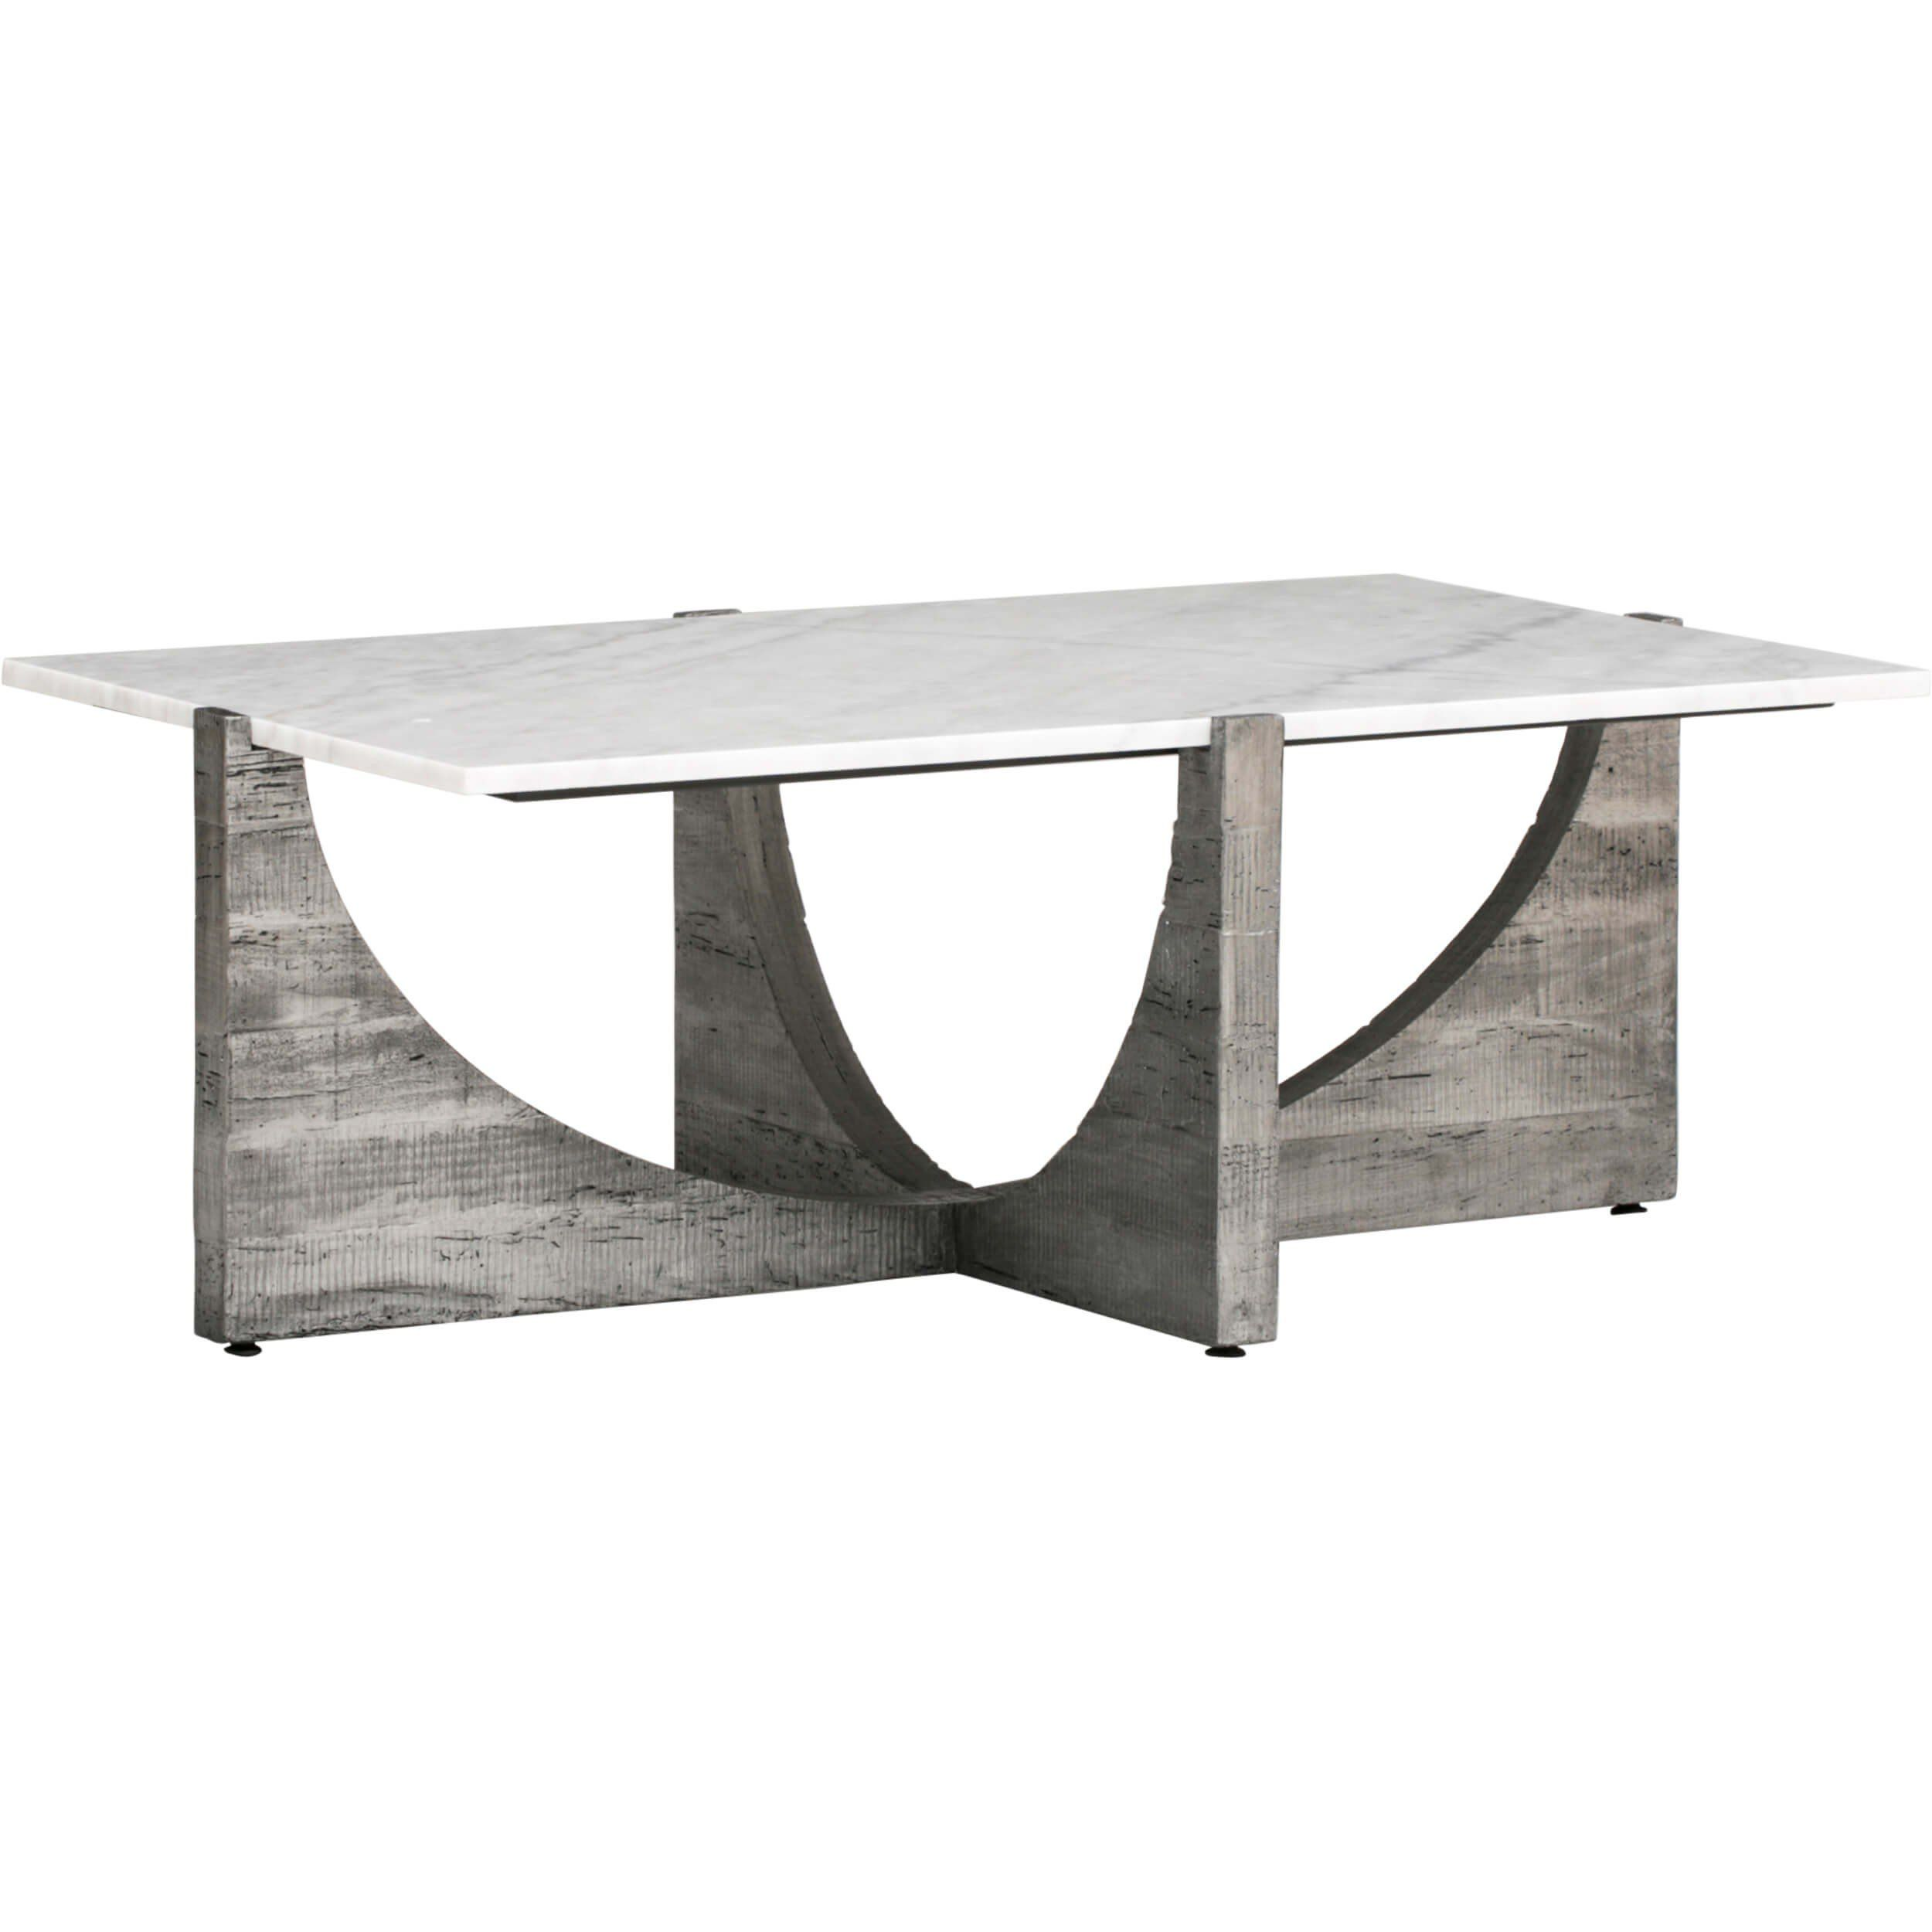 Pin By Crystal On Furniture Modern Glass Coffee Table Cocktail Tables White Cocktail Tables [ 2500 x 2500 Pixel ]